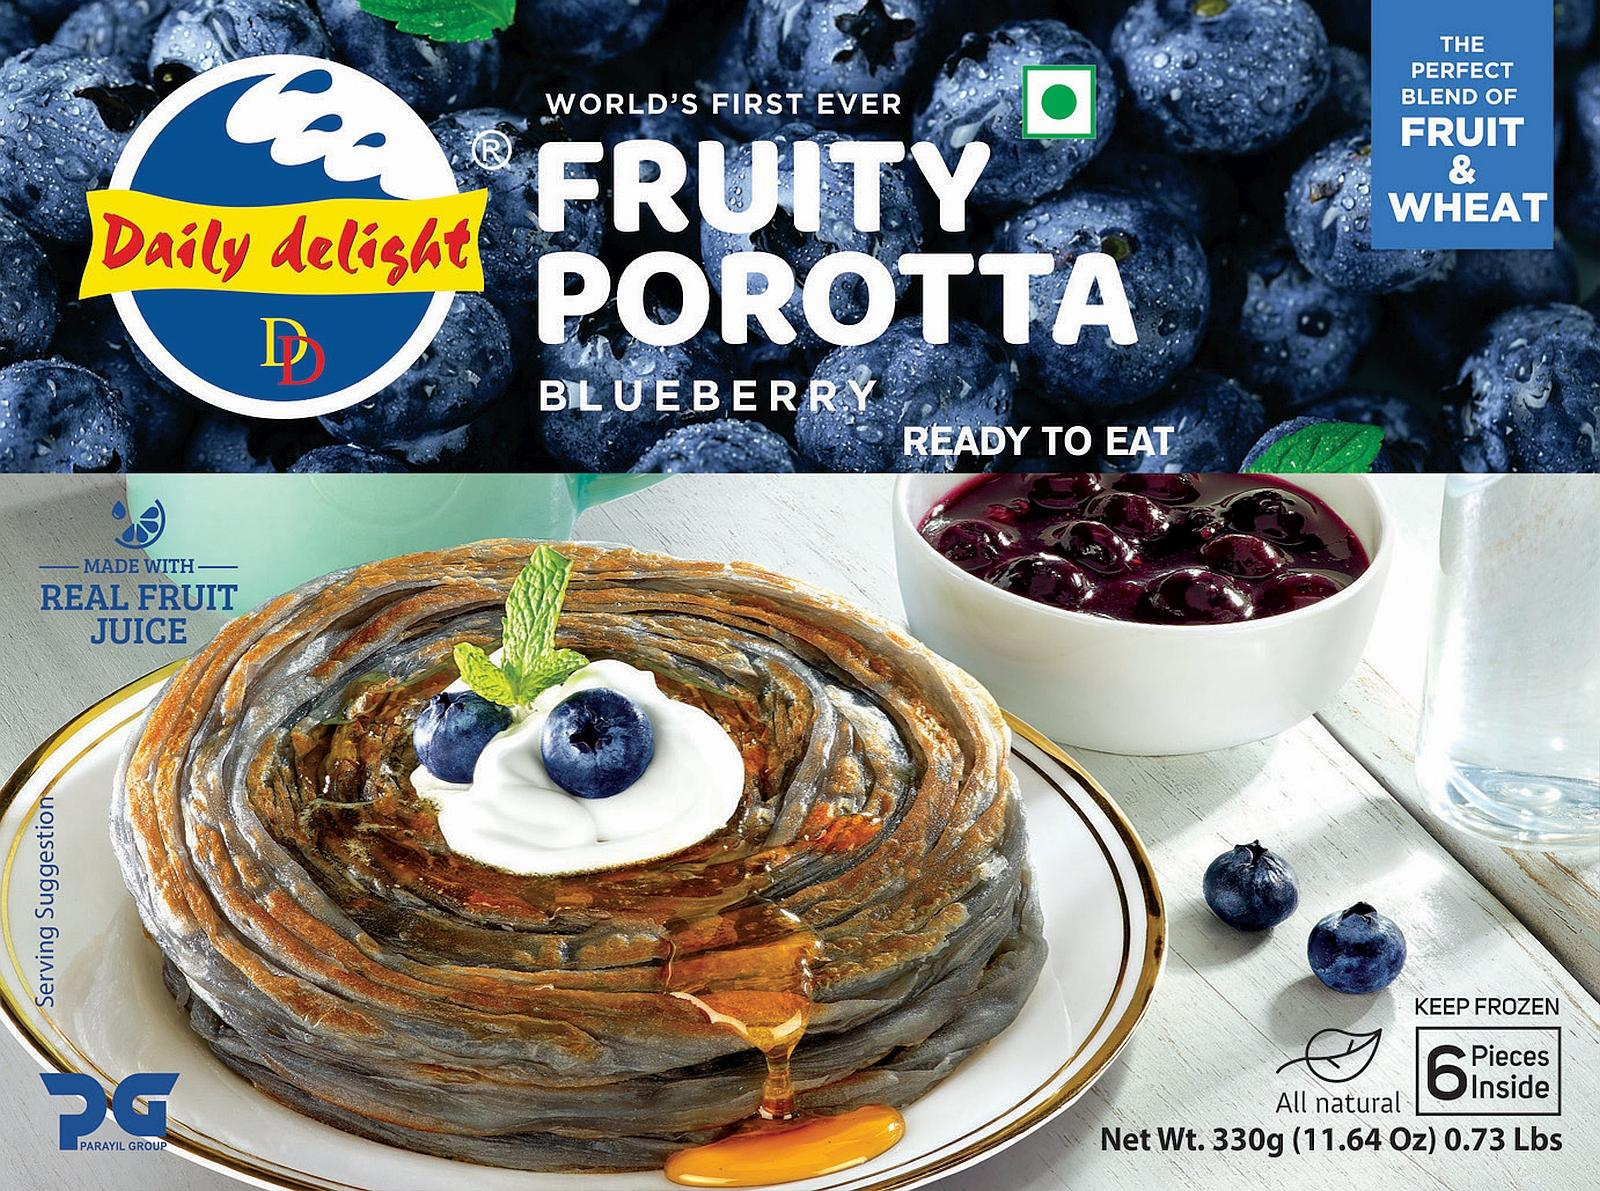 Daily Delight Blueberry Porotta